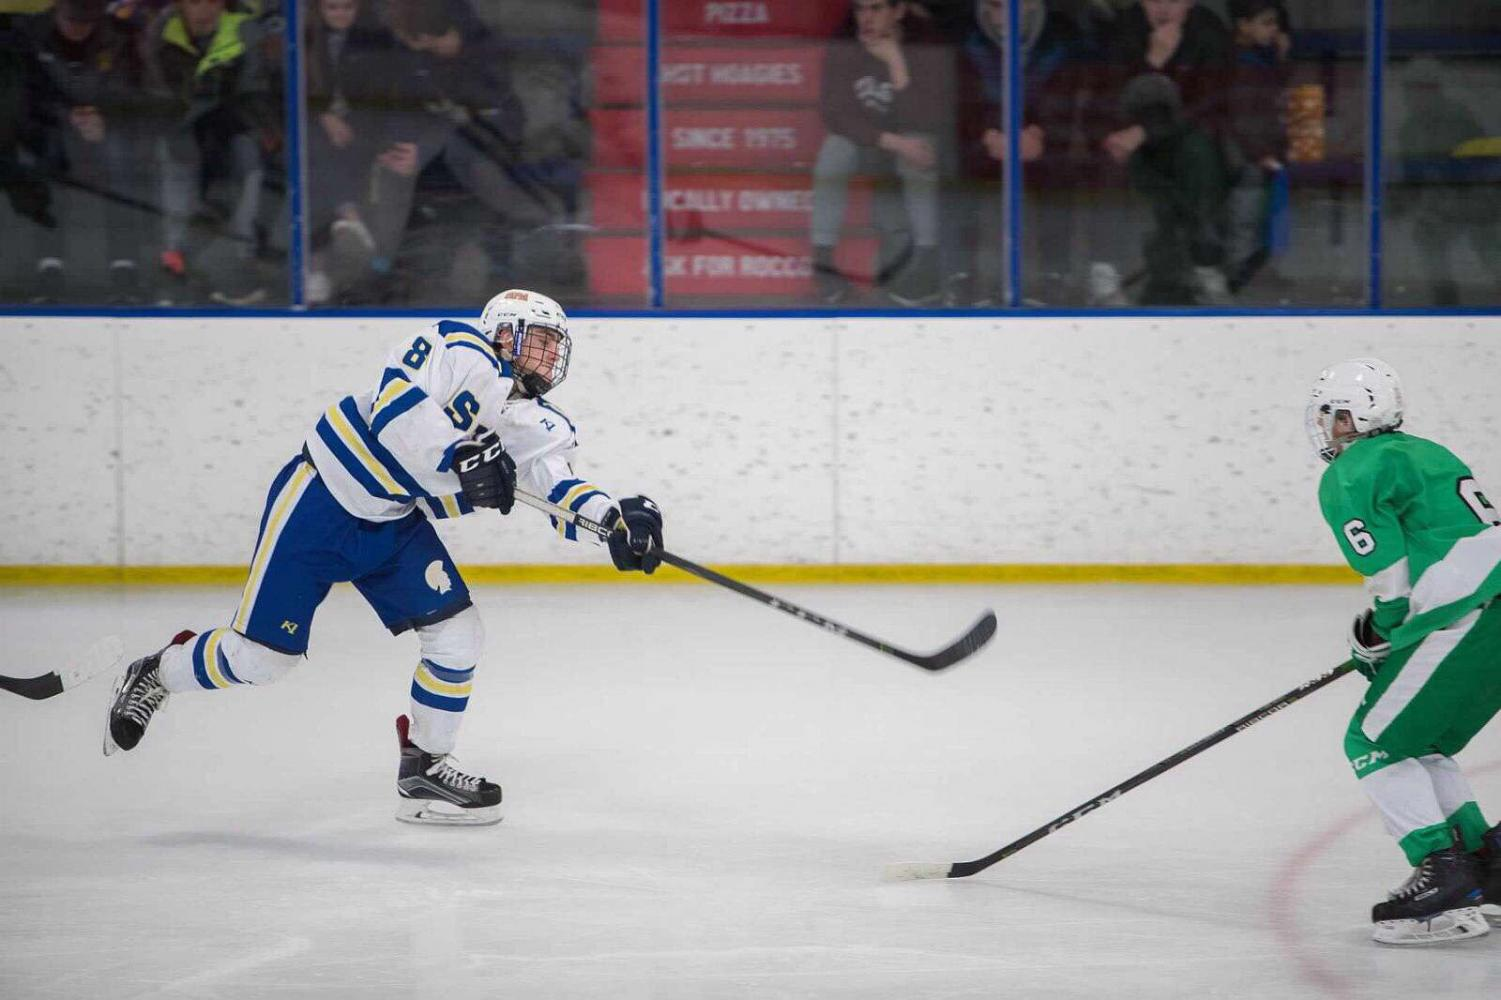 Sophomore Michael Bagnoli shoots the puck. Bagnoli is a two sport varsity athlete playing soccer and hockey.